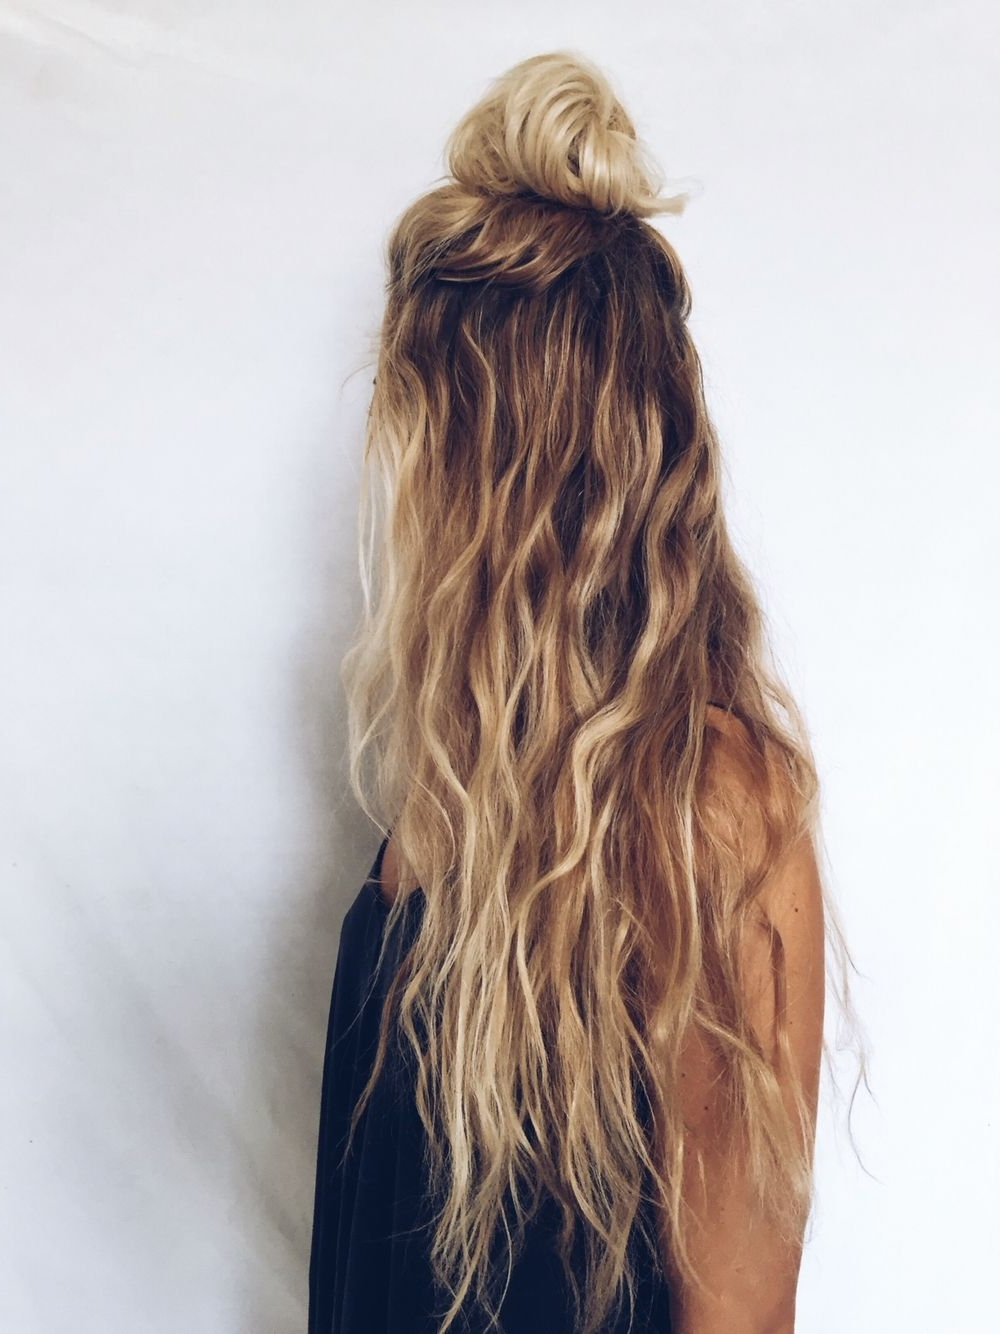 Widely Used Casual Bright Waves Blonde Hairstyles With Bangs Throughout Long Hair, Blonde, Curly Wavy, Natural Kcdoubletake (View 20 of 20)